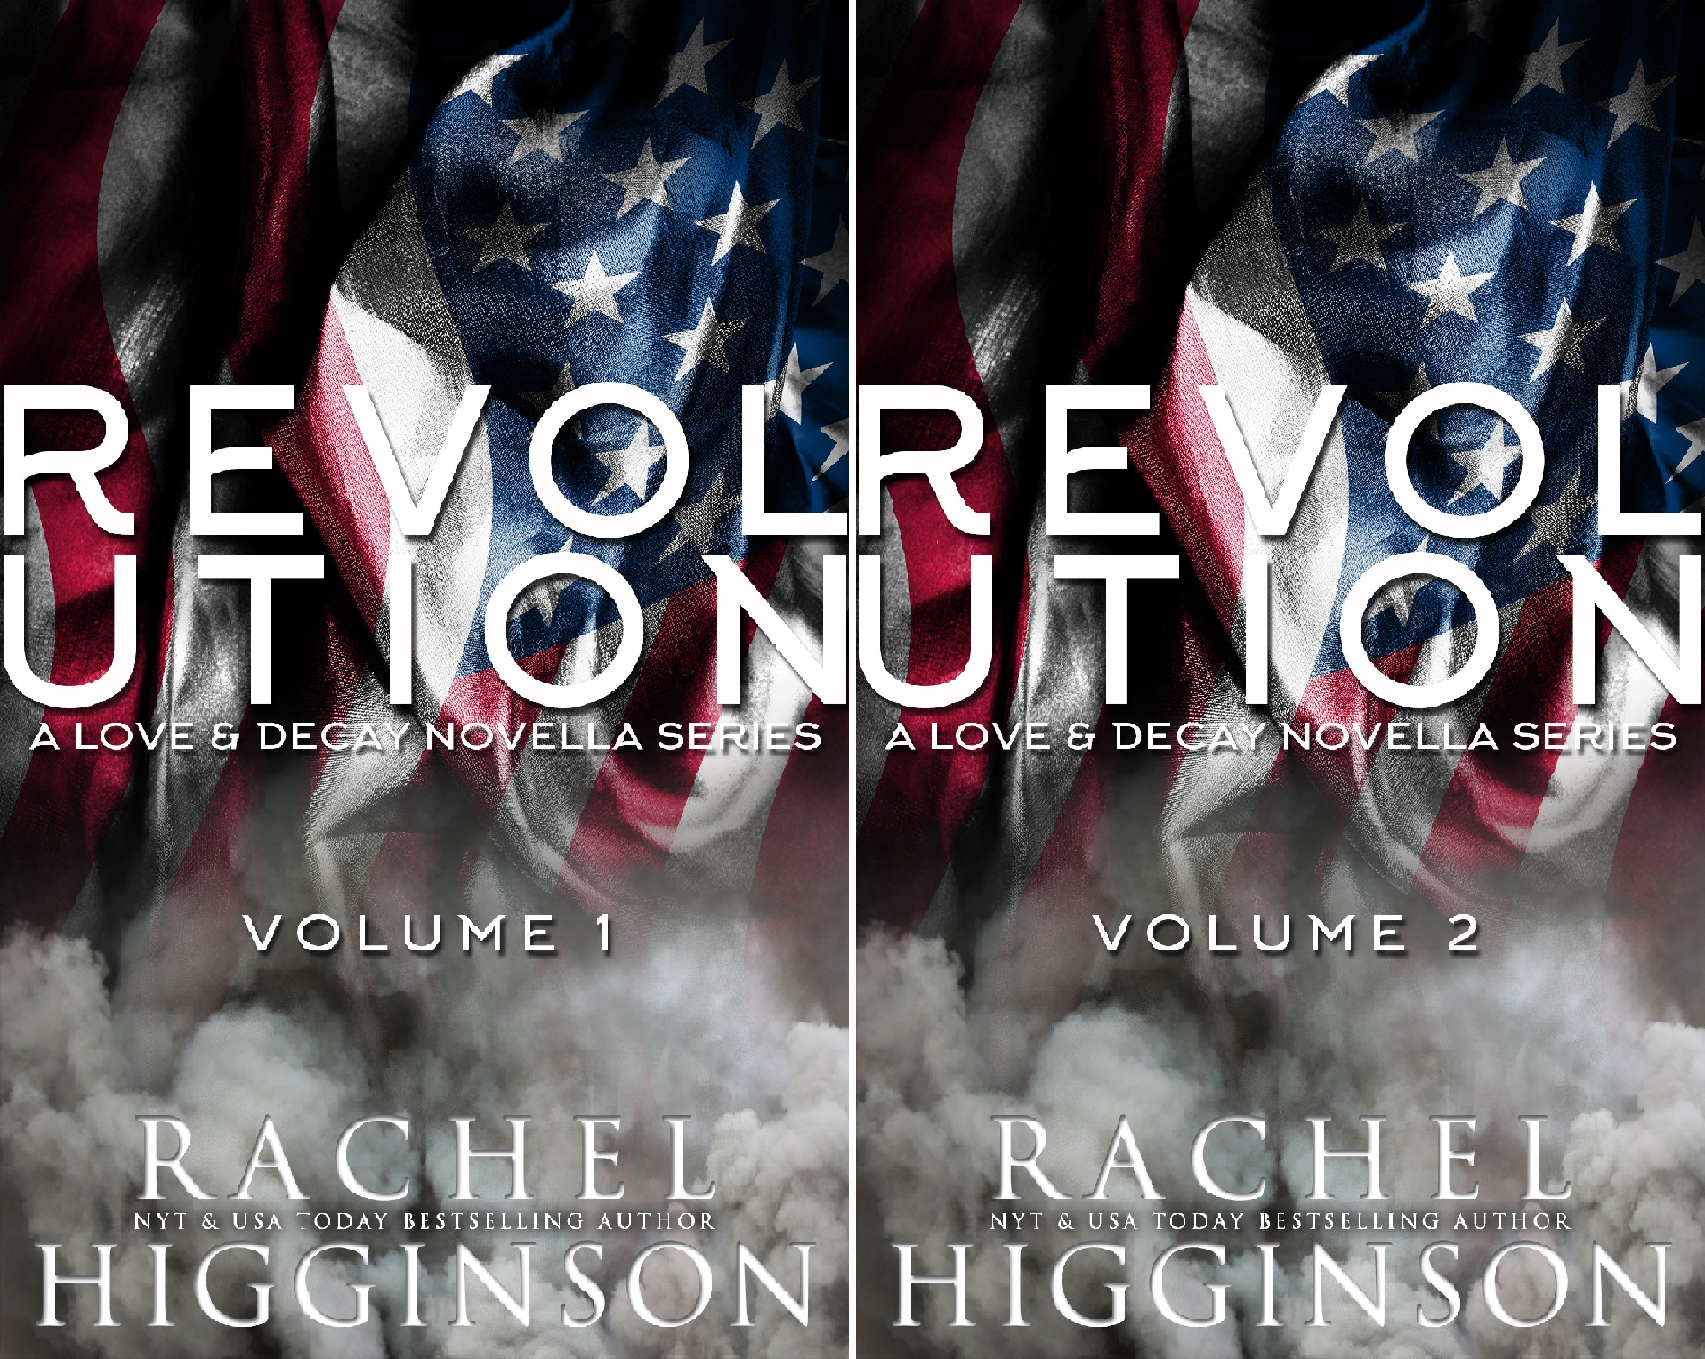 Download Love and Decay: Revolution (2 Book Series) B077K8DYD3